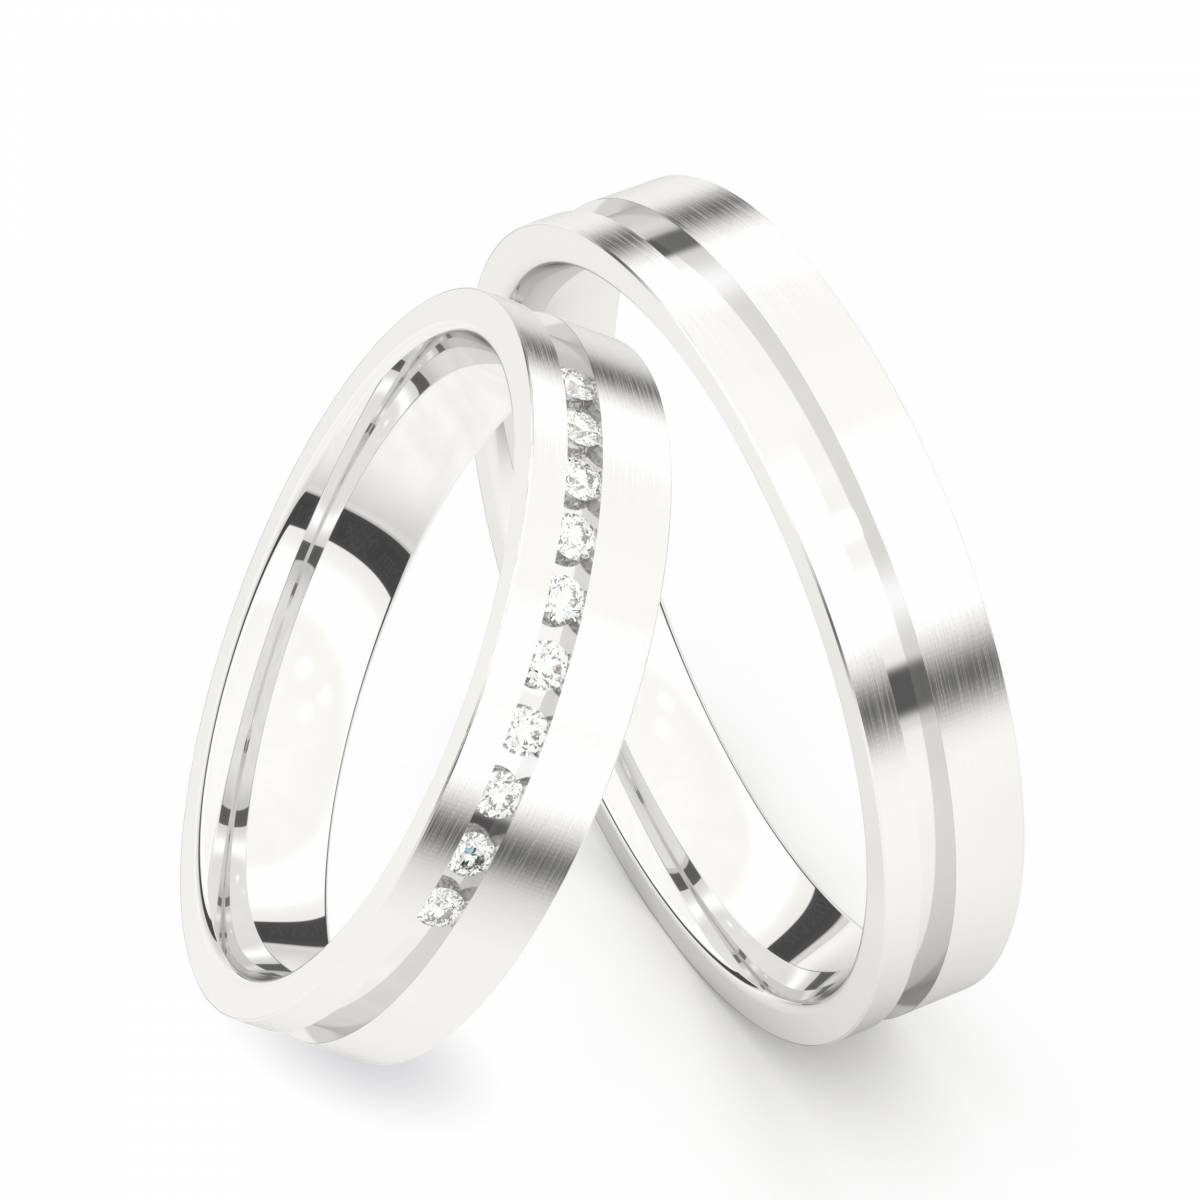 Juwelier Jan Maes - Trouwringen - Verlovingsringen - Juwelen - House of Weddings - 12